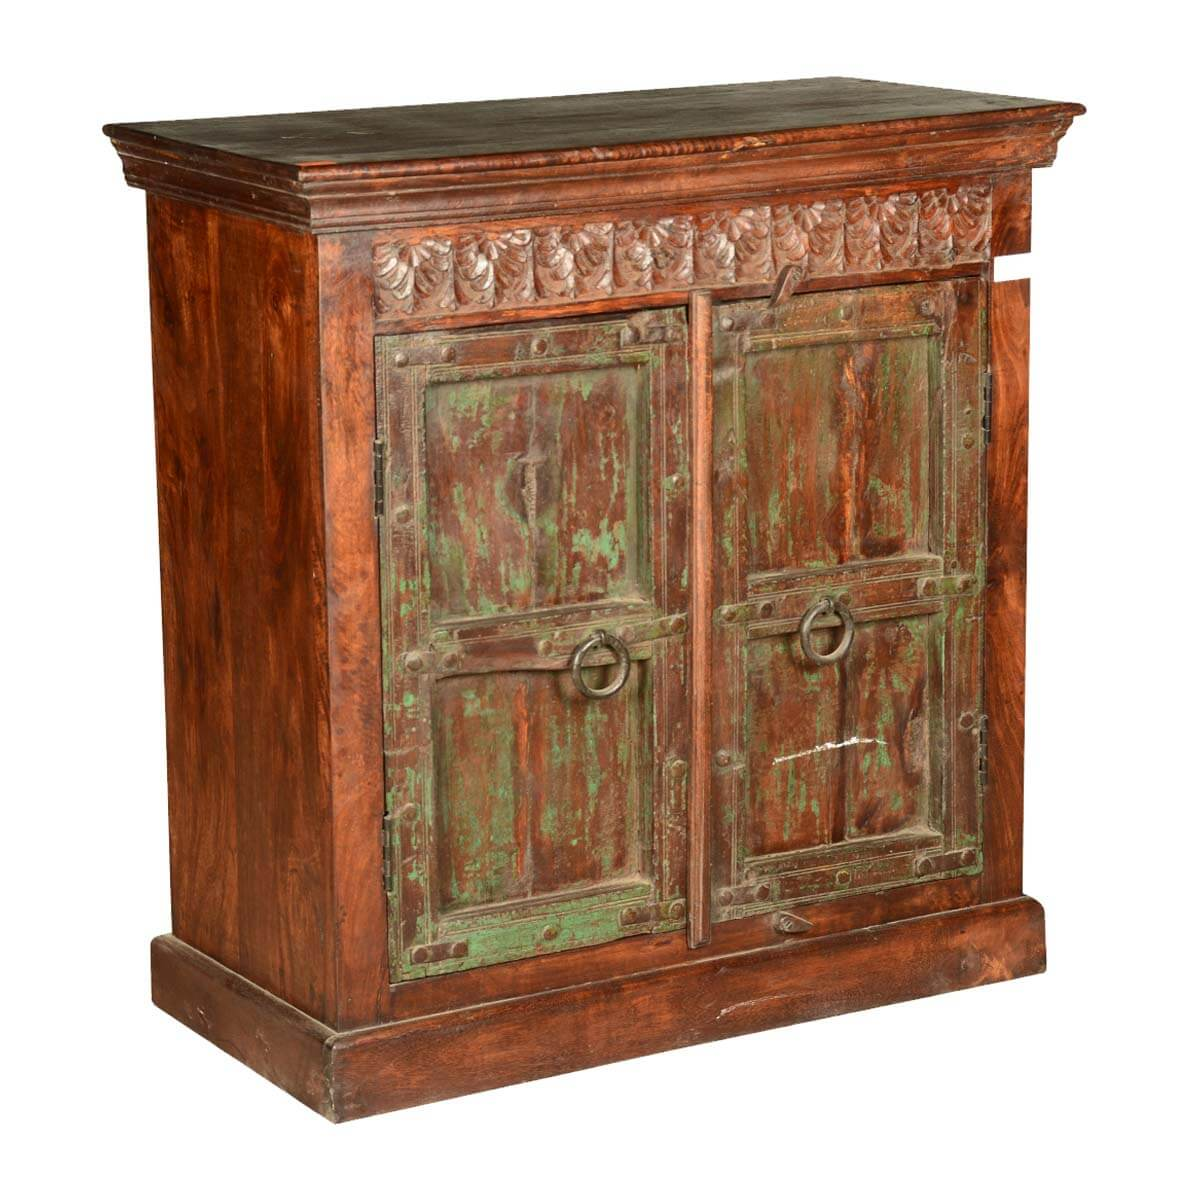 Italian Gothic Floral Reclaimed Wood Buffet Cabinet : 68772 from www.sierralivingconcepts.com size 1200 x 1200 jpeg 168kB